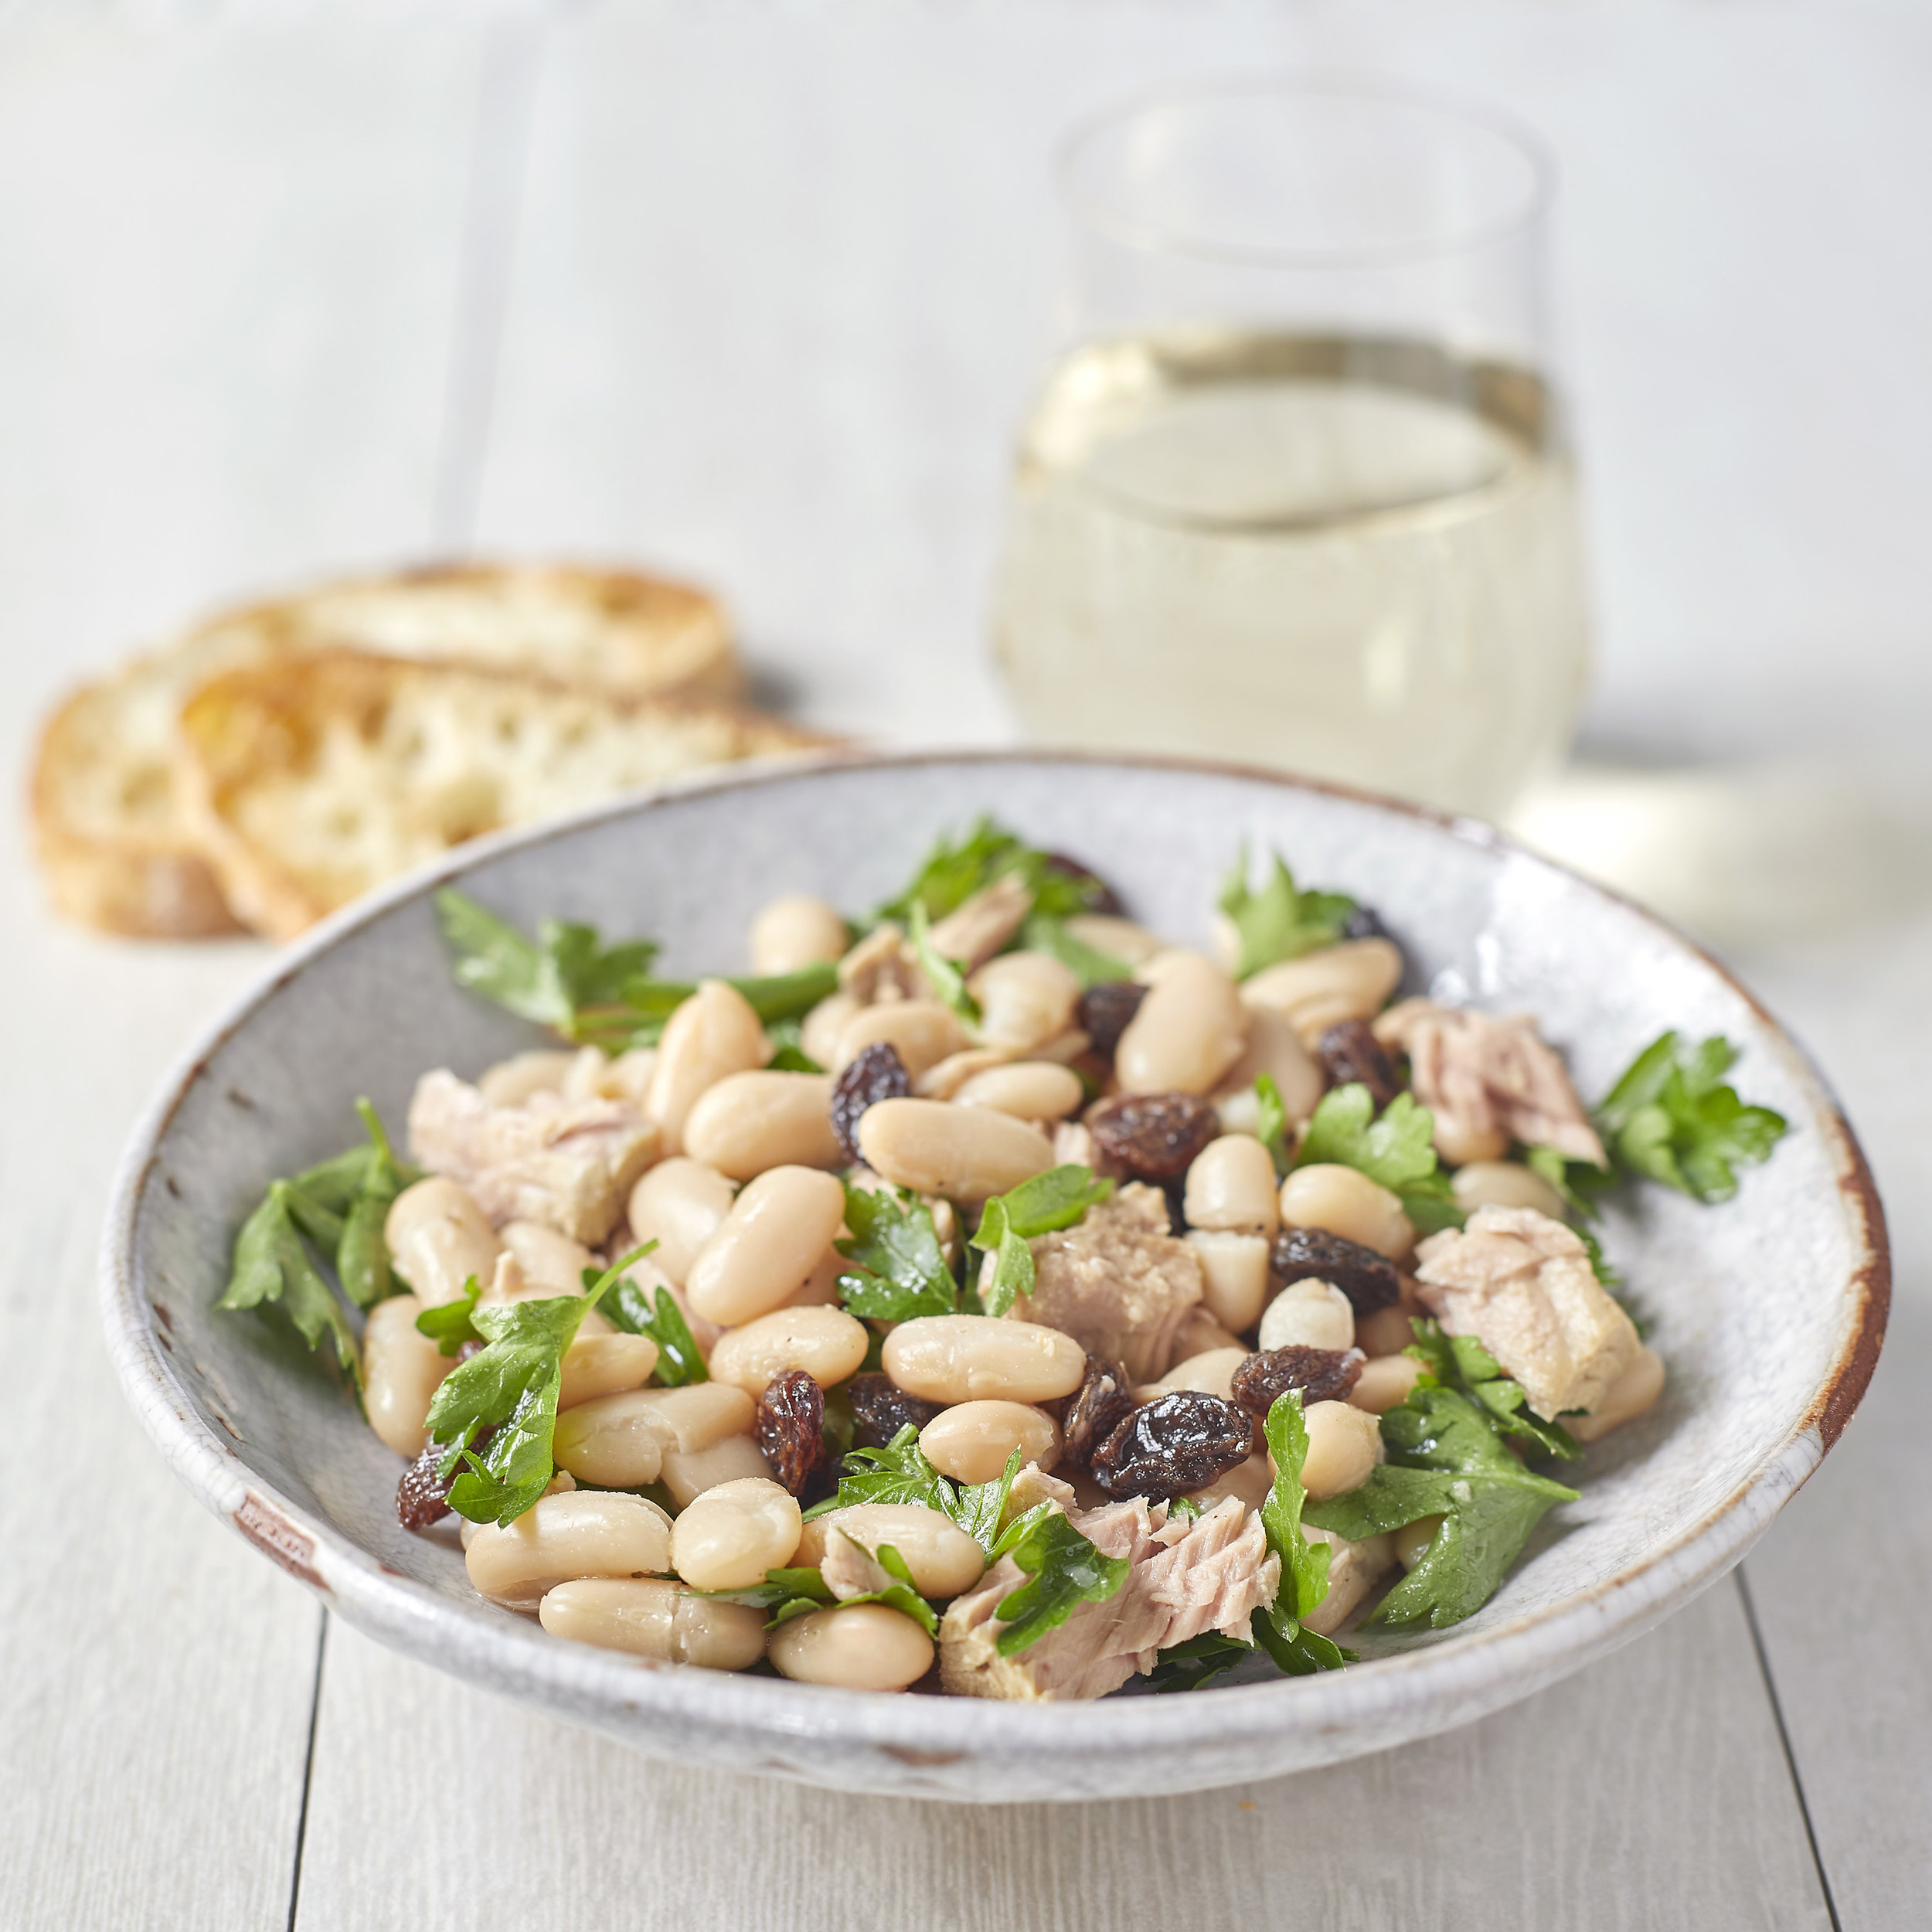 Tuna & White Beans - Ingredients:- 1 Jar of Cole's Wild Caught Premium Tuna Fillets in Olive Oil with Fennel- 2/3 Cup Canned Cannellini Beans, rinsed & drained- 1/4 Cup Raisins- 1/4 Cup Torn Fresh Flat-leaf Parsley- Zest of 1/2 Lemon- 1 Tbsp Fresh Lemon Juice- 1/8 Tsp Course Salt Ground PepperDirections:Mix together the tuna, beans, raisins, parsley, lemon zest, lemon juice, and salt. Season with pepper.